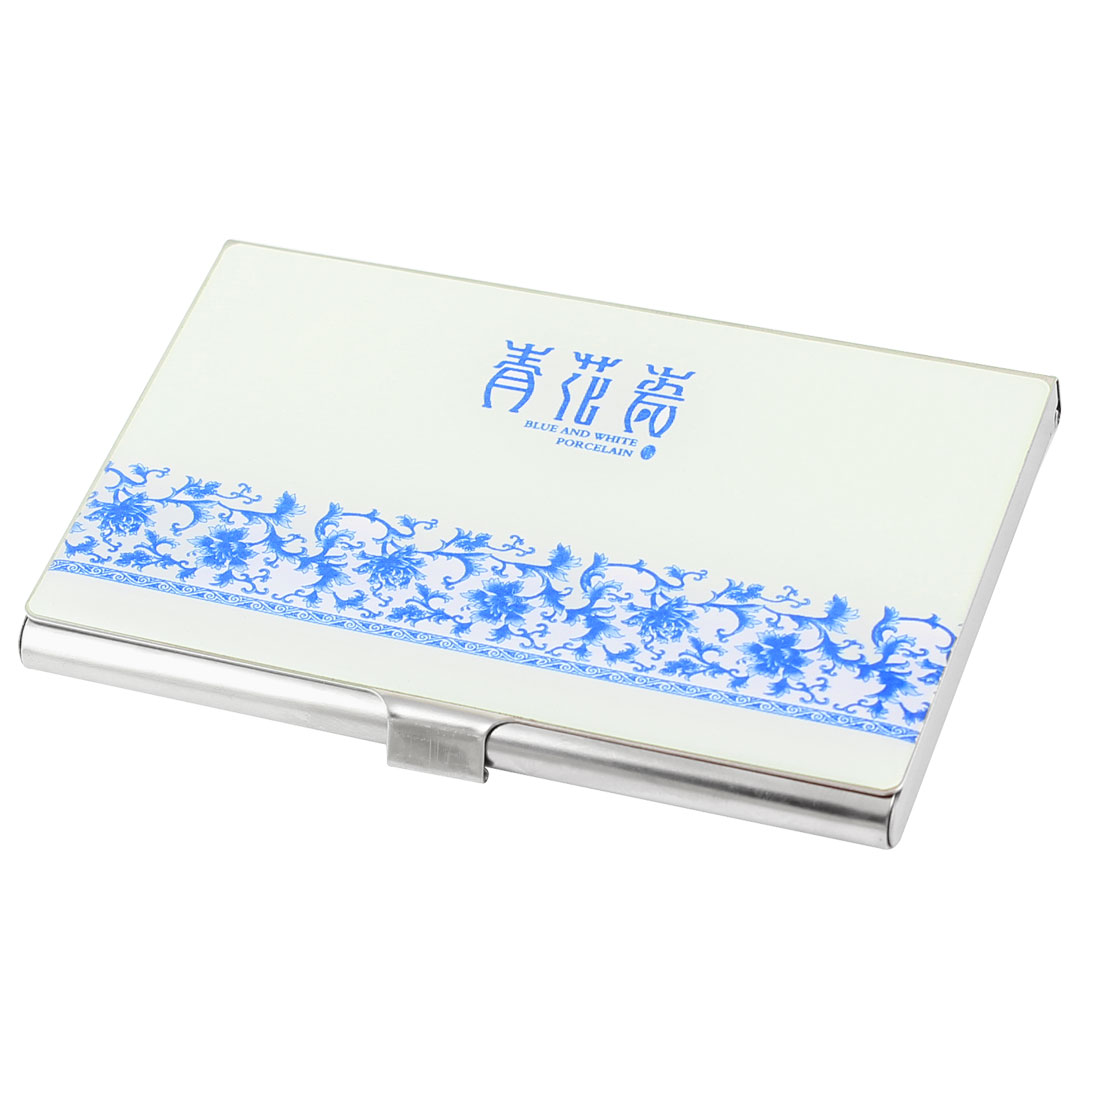 Porcelain Print Exterior Rectangle Business Card Box Container Holder Blue White